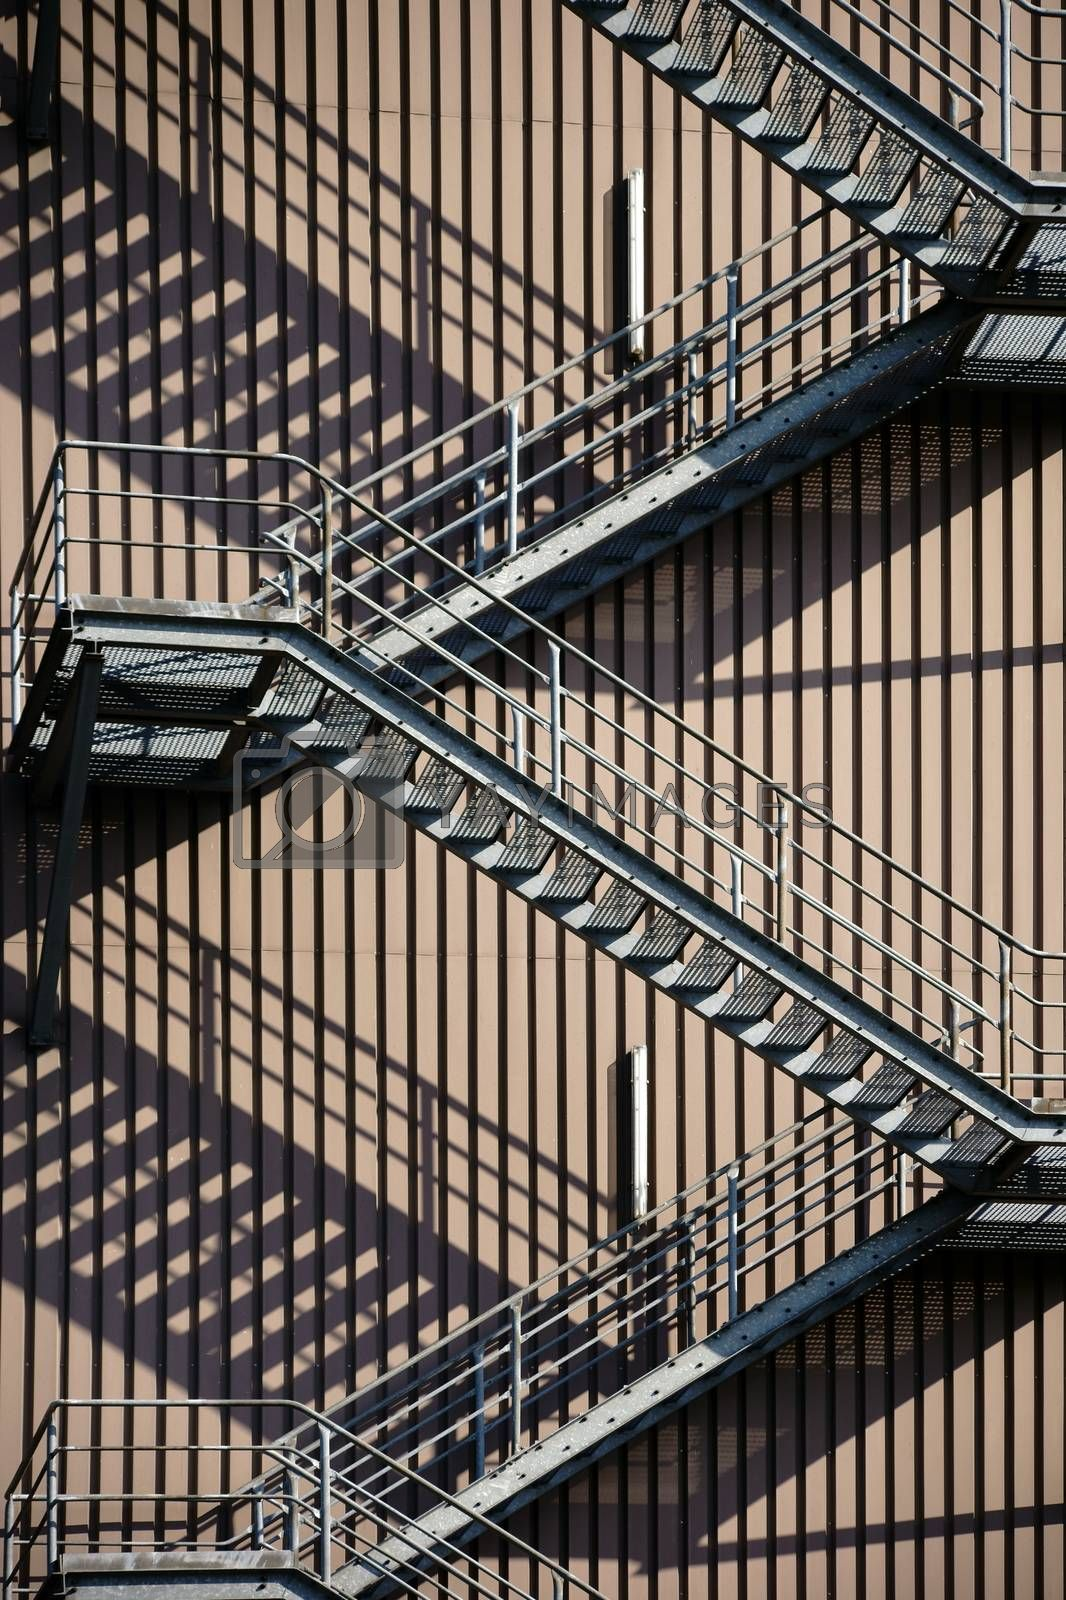 A walk outside stairway at an industrial building casts a shadow.